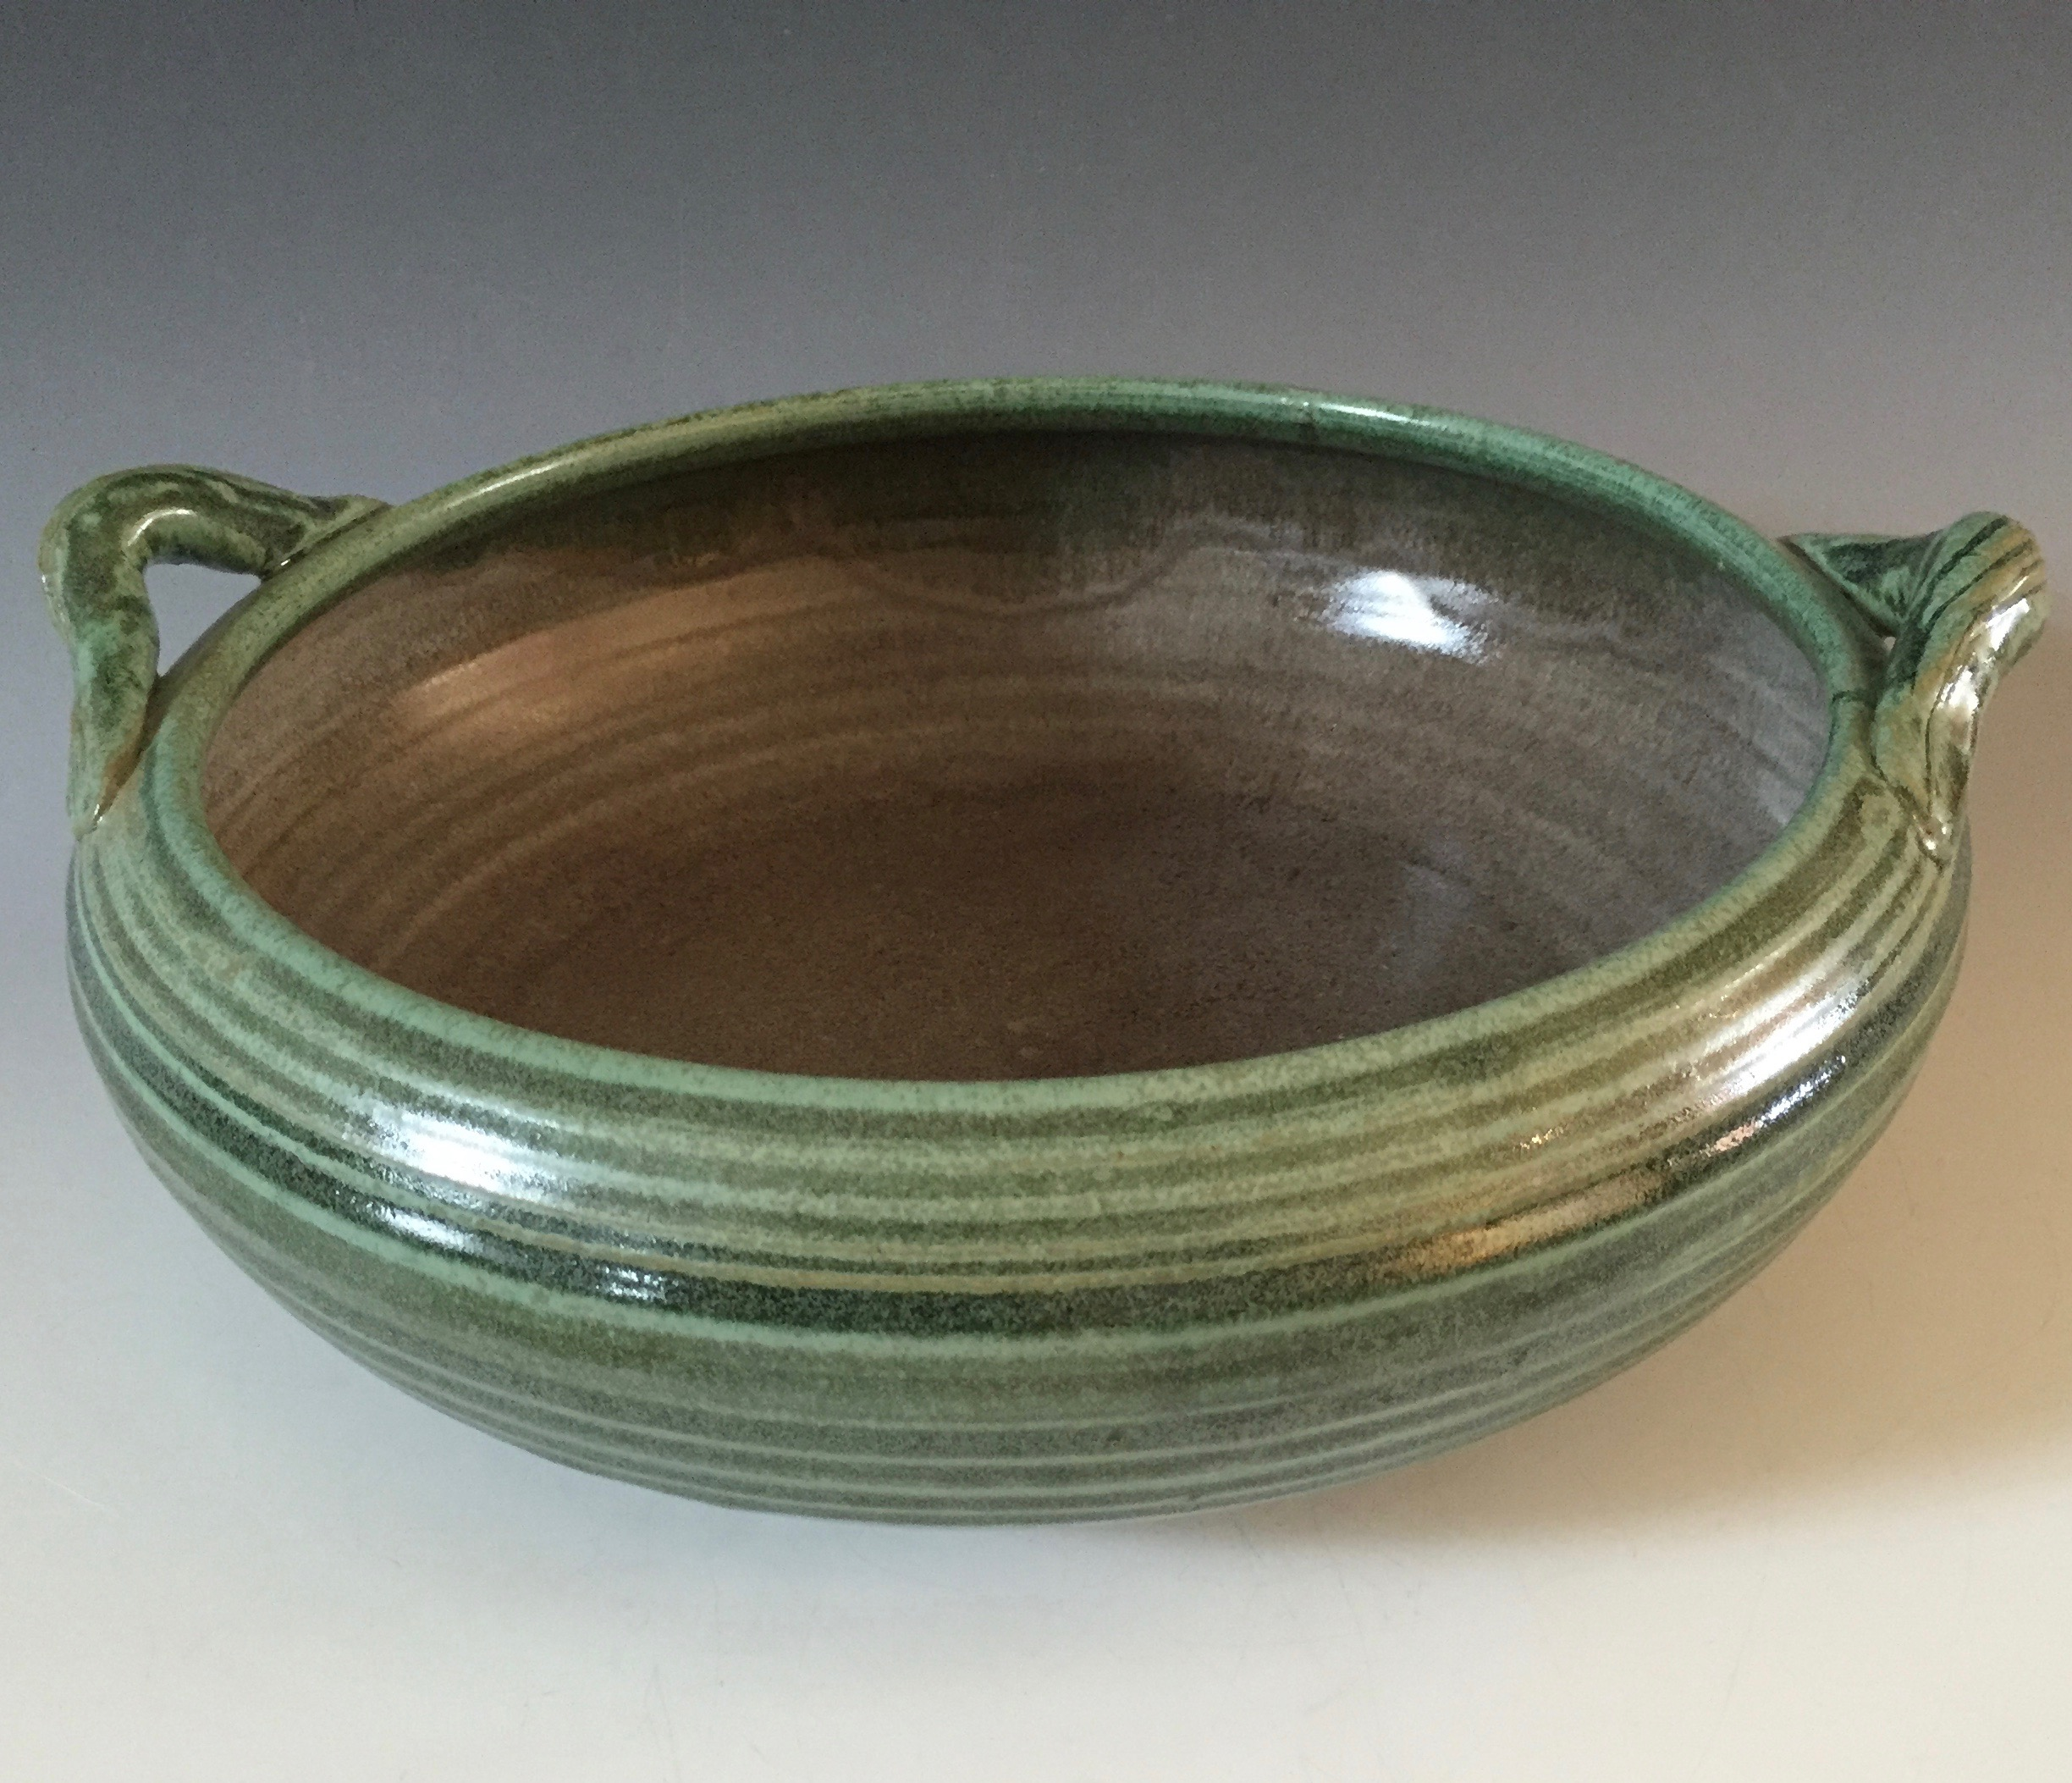 Serving Bowl with Handles - $72